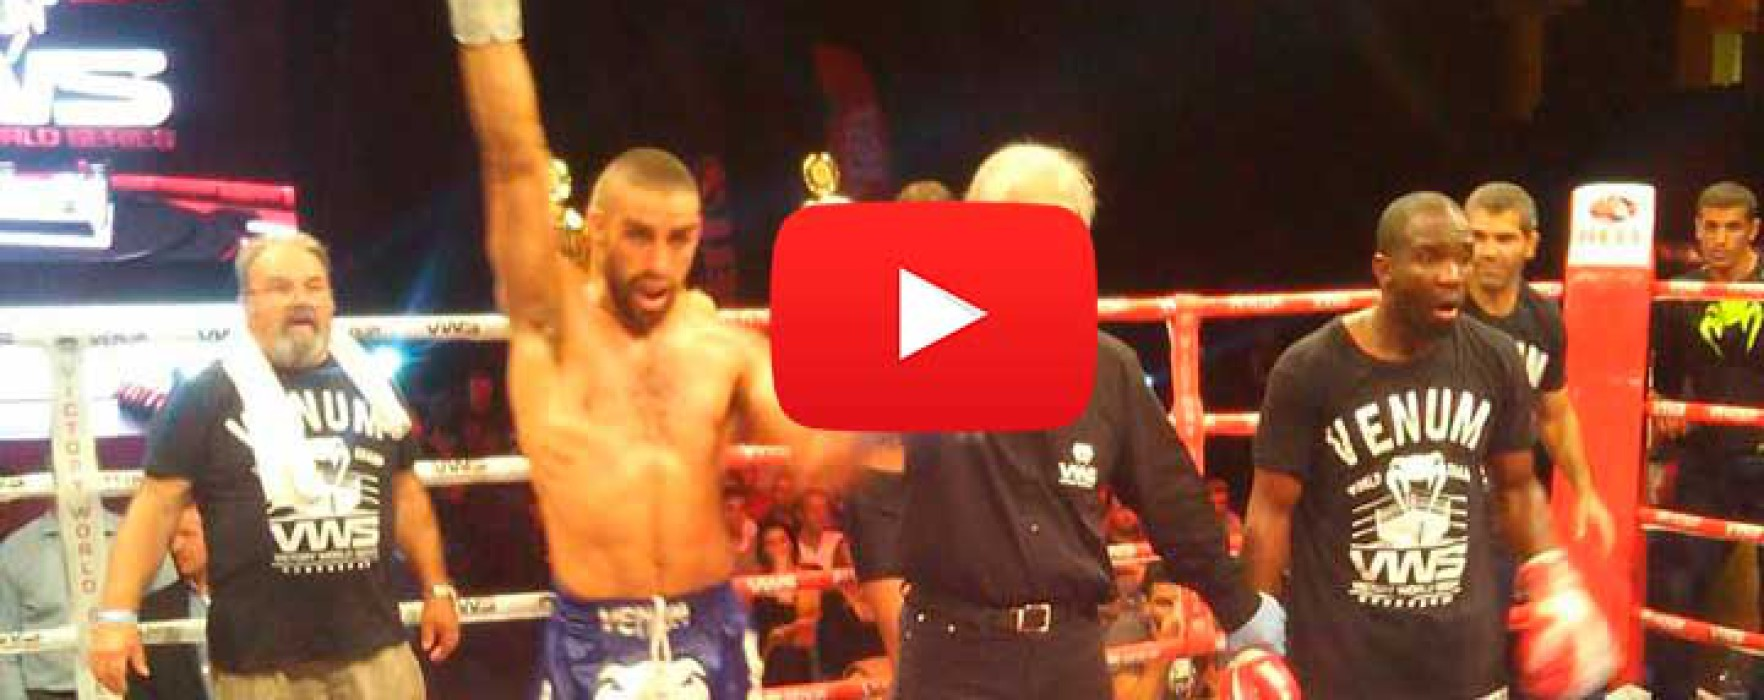 Videos/Results: Mustapha Haida wins the 72.5kg VVWS Tournament!